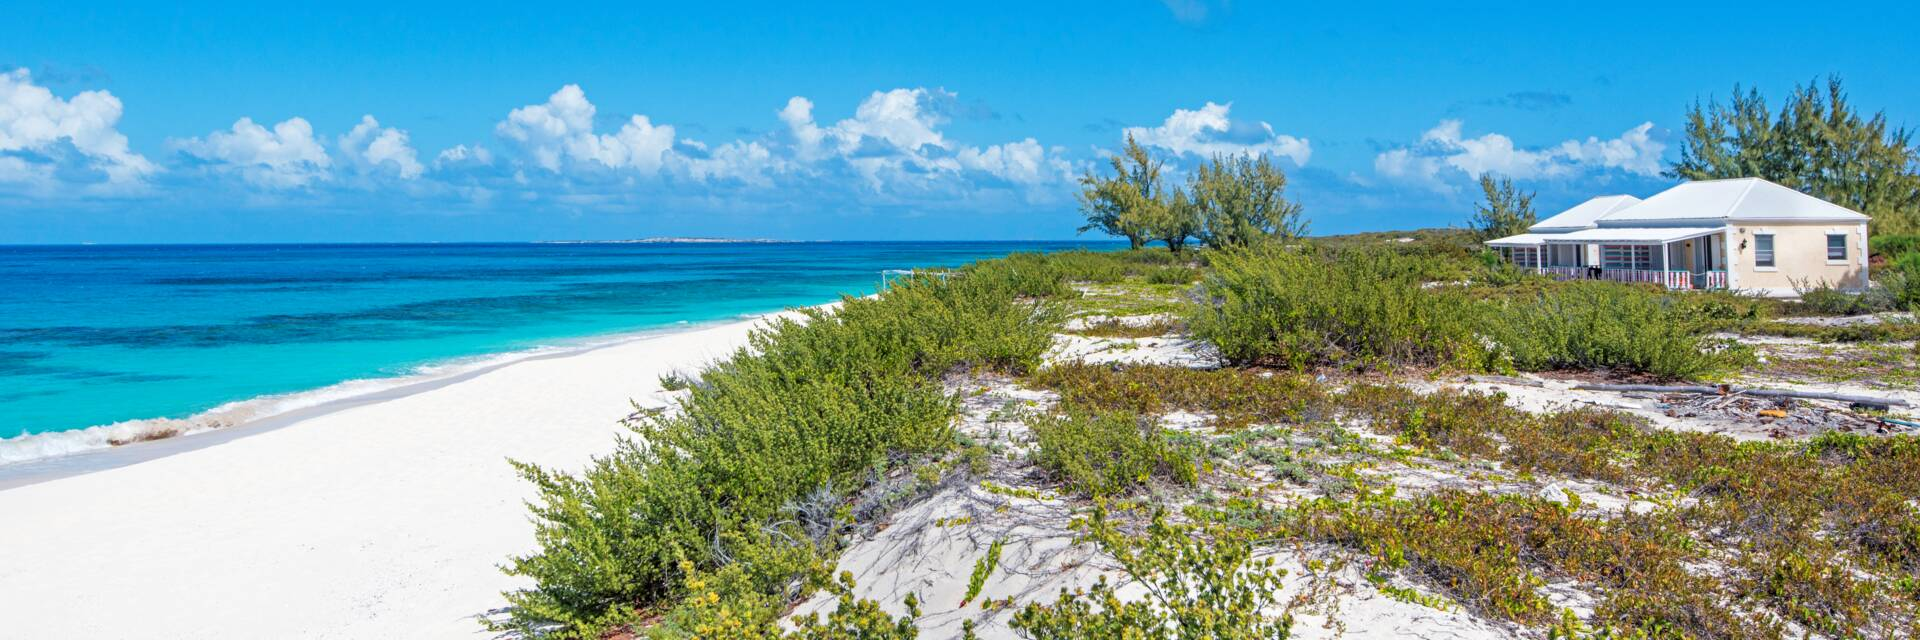 Salt Cay Hotels And Villas Visit Turks And Caicos Islands